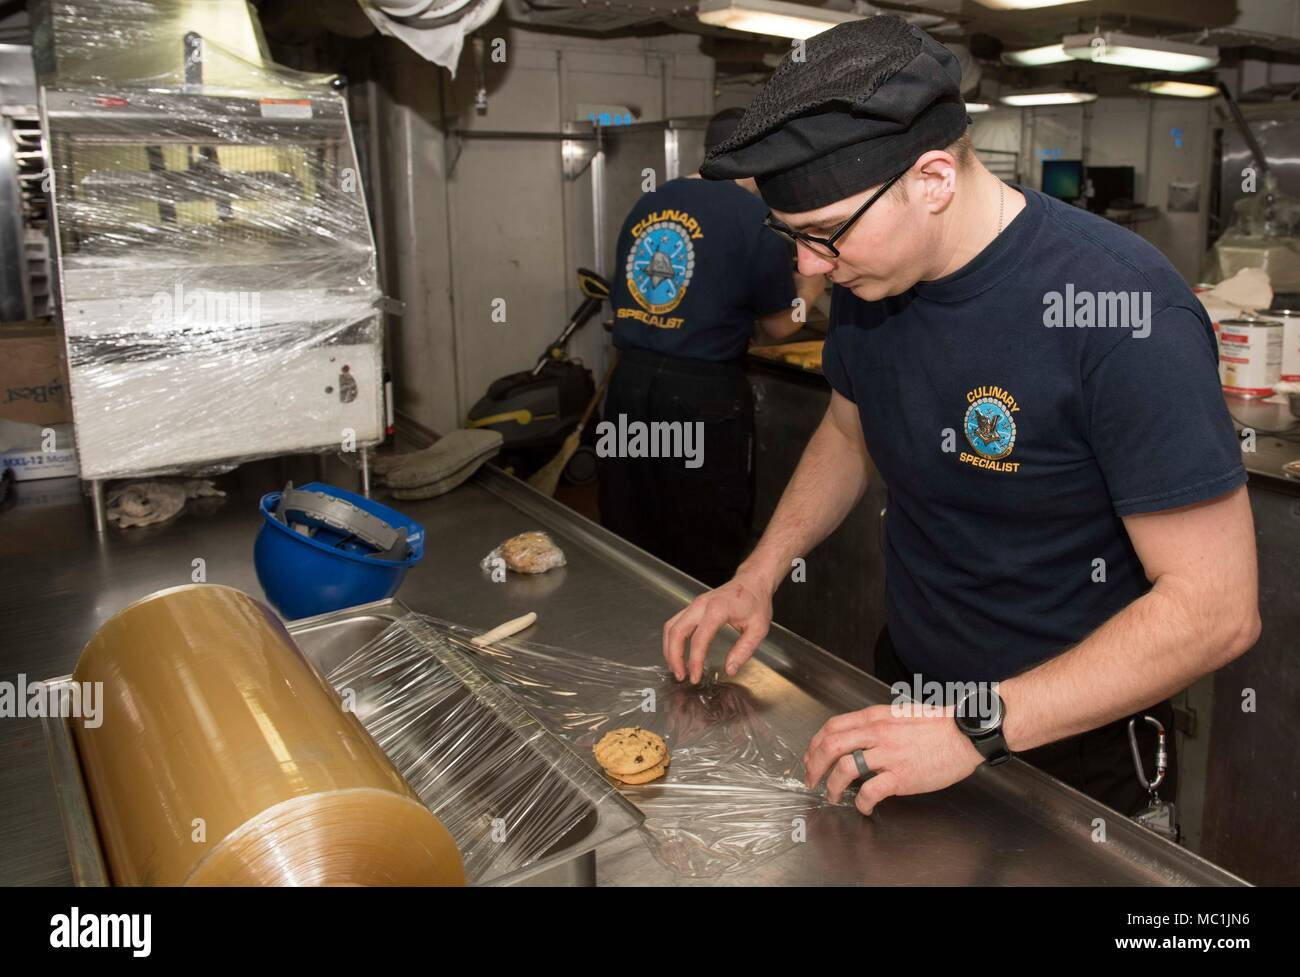 180122-N-OX360-003 PORTSMOUTH, Va. (Jan. 22, 2018) Culinary Specialist 3rd Class David Ackley, from Port Ricky, Fla, wraps cookies aboard the aircraft carrier USS Dwight D. Eisenhower (CVN 69)(Ike). Ike is undergoing a Planned Incremental Availability (PIA) at Norfolk Naval Shipyard during the maintenance phase of the Optimized Fleet Response Plan (OFRP). (U.S. Navy photo by Mass Communication Specialist Seaman James Norket) Stock Photo